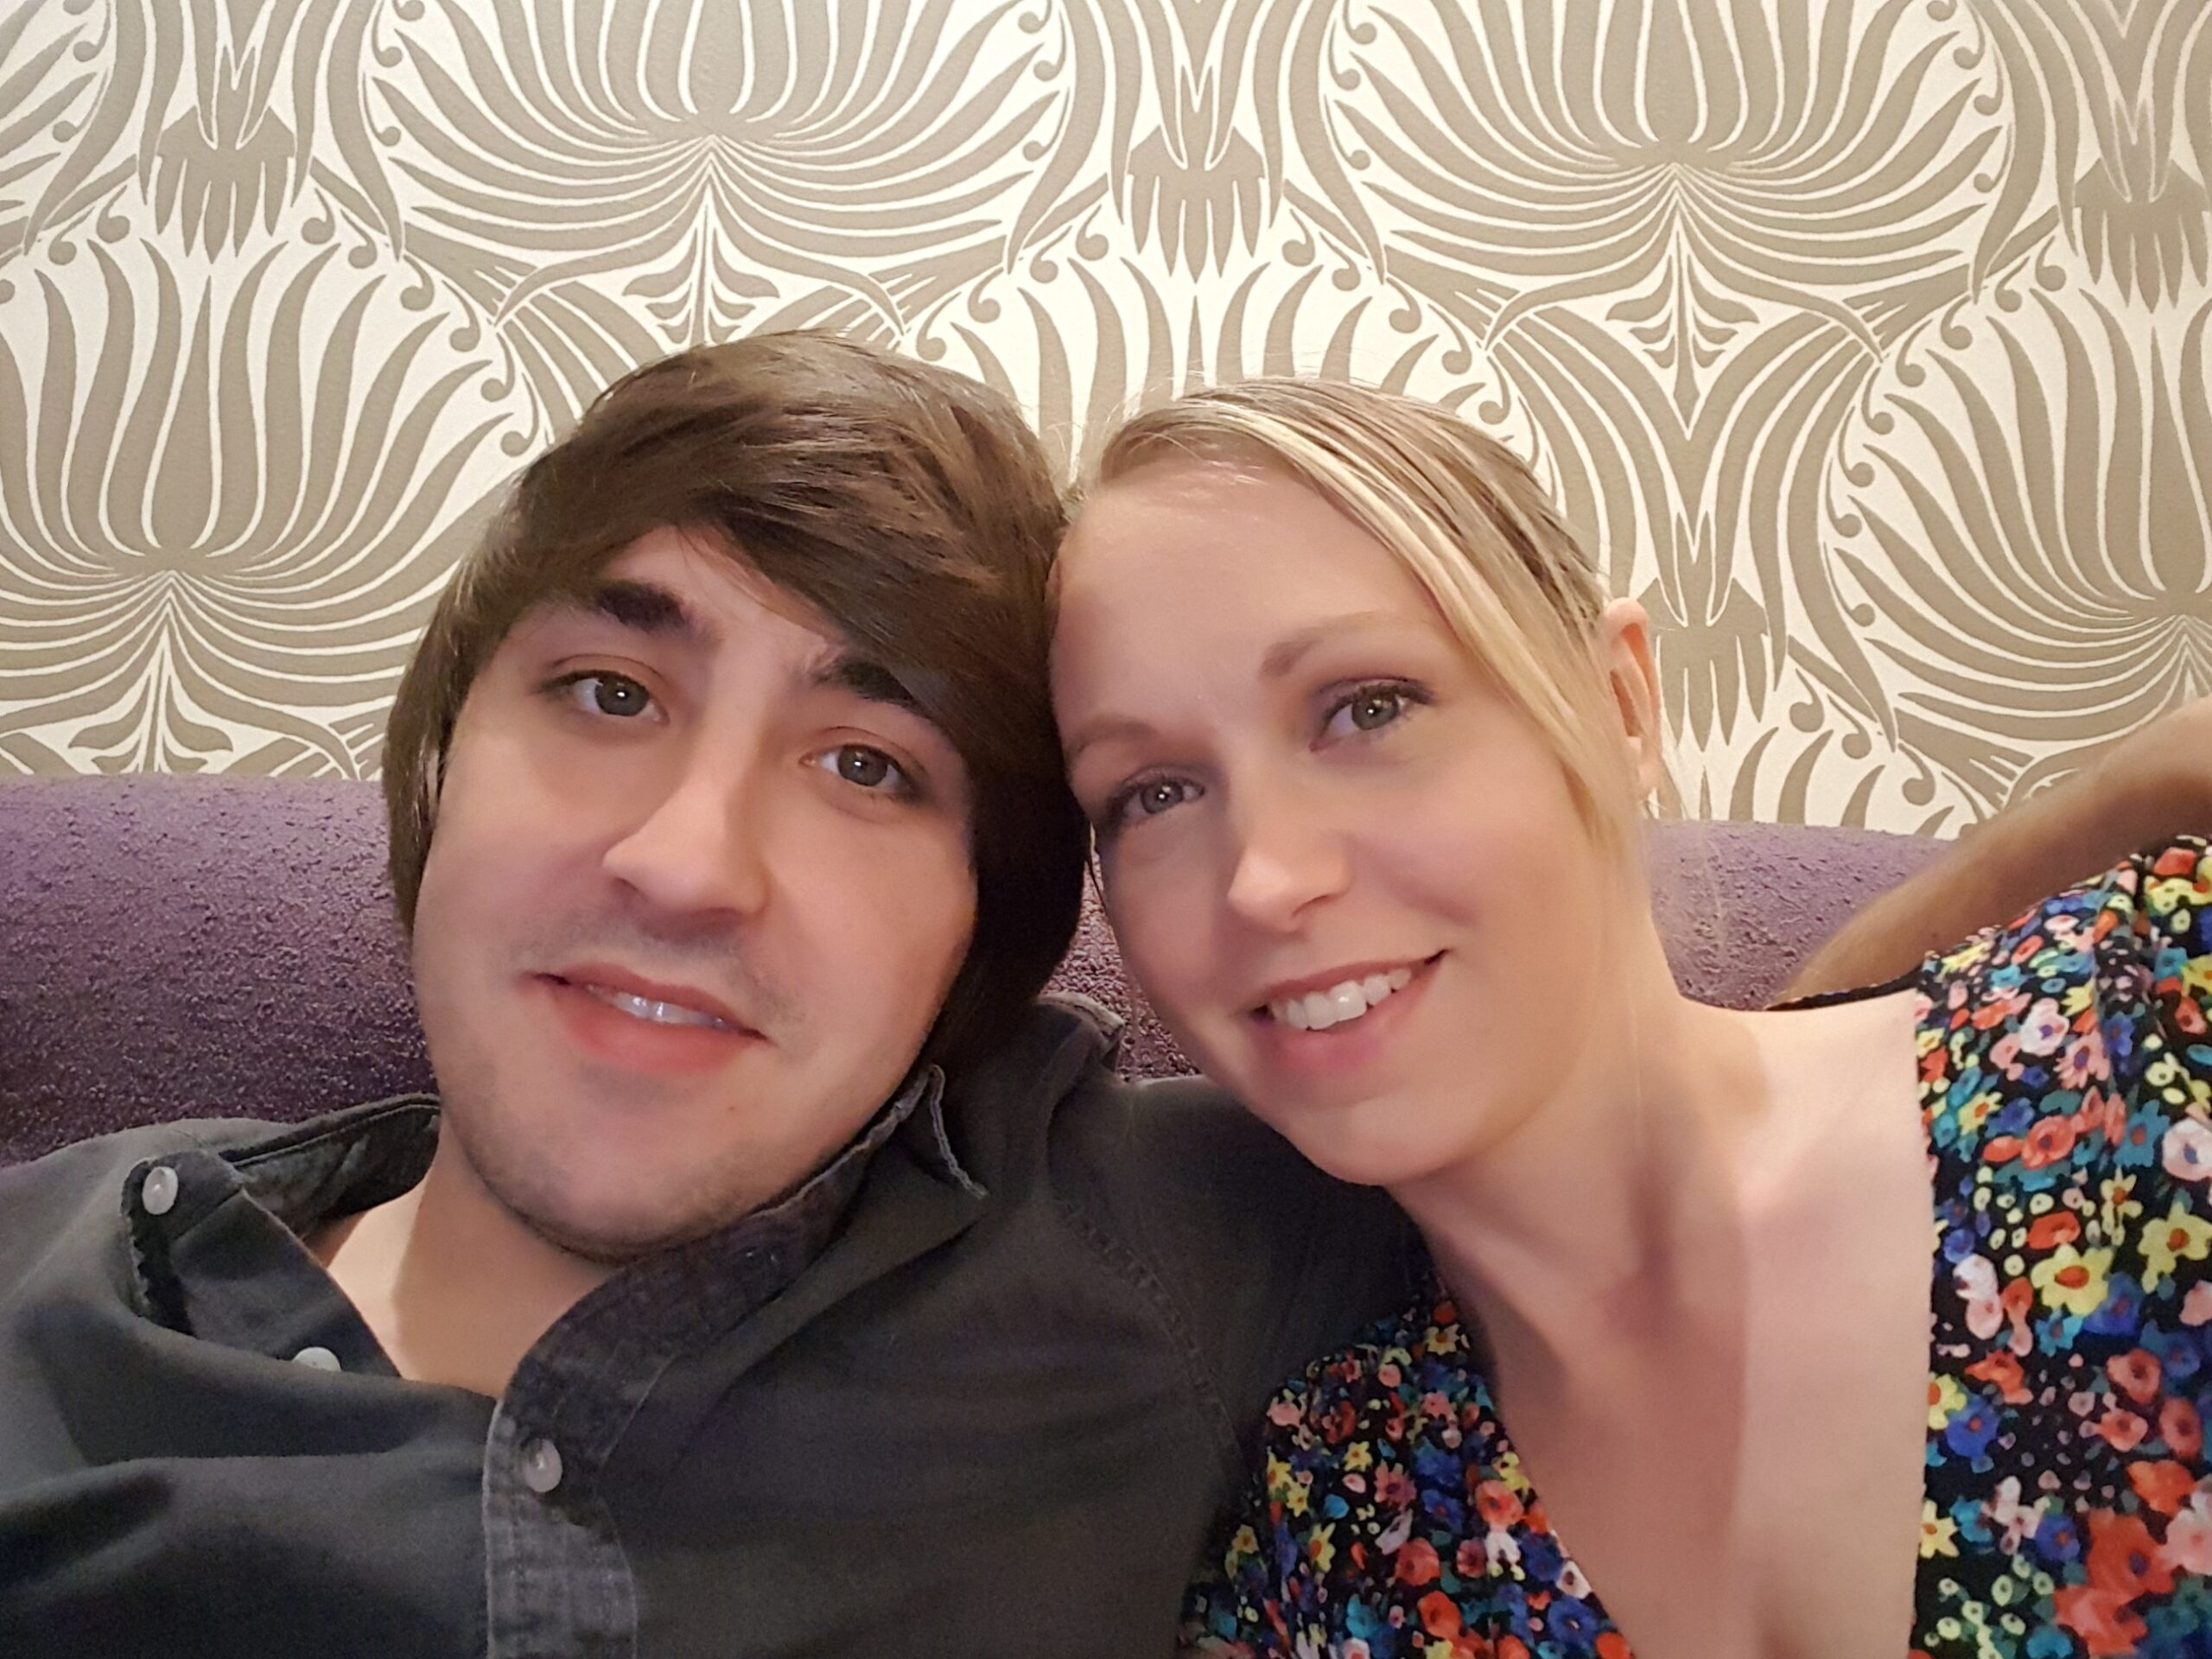 husband and wife dates, husband and wife selfie,